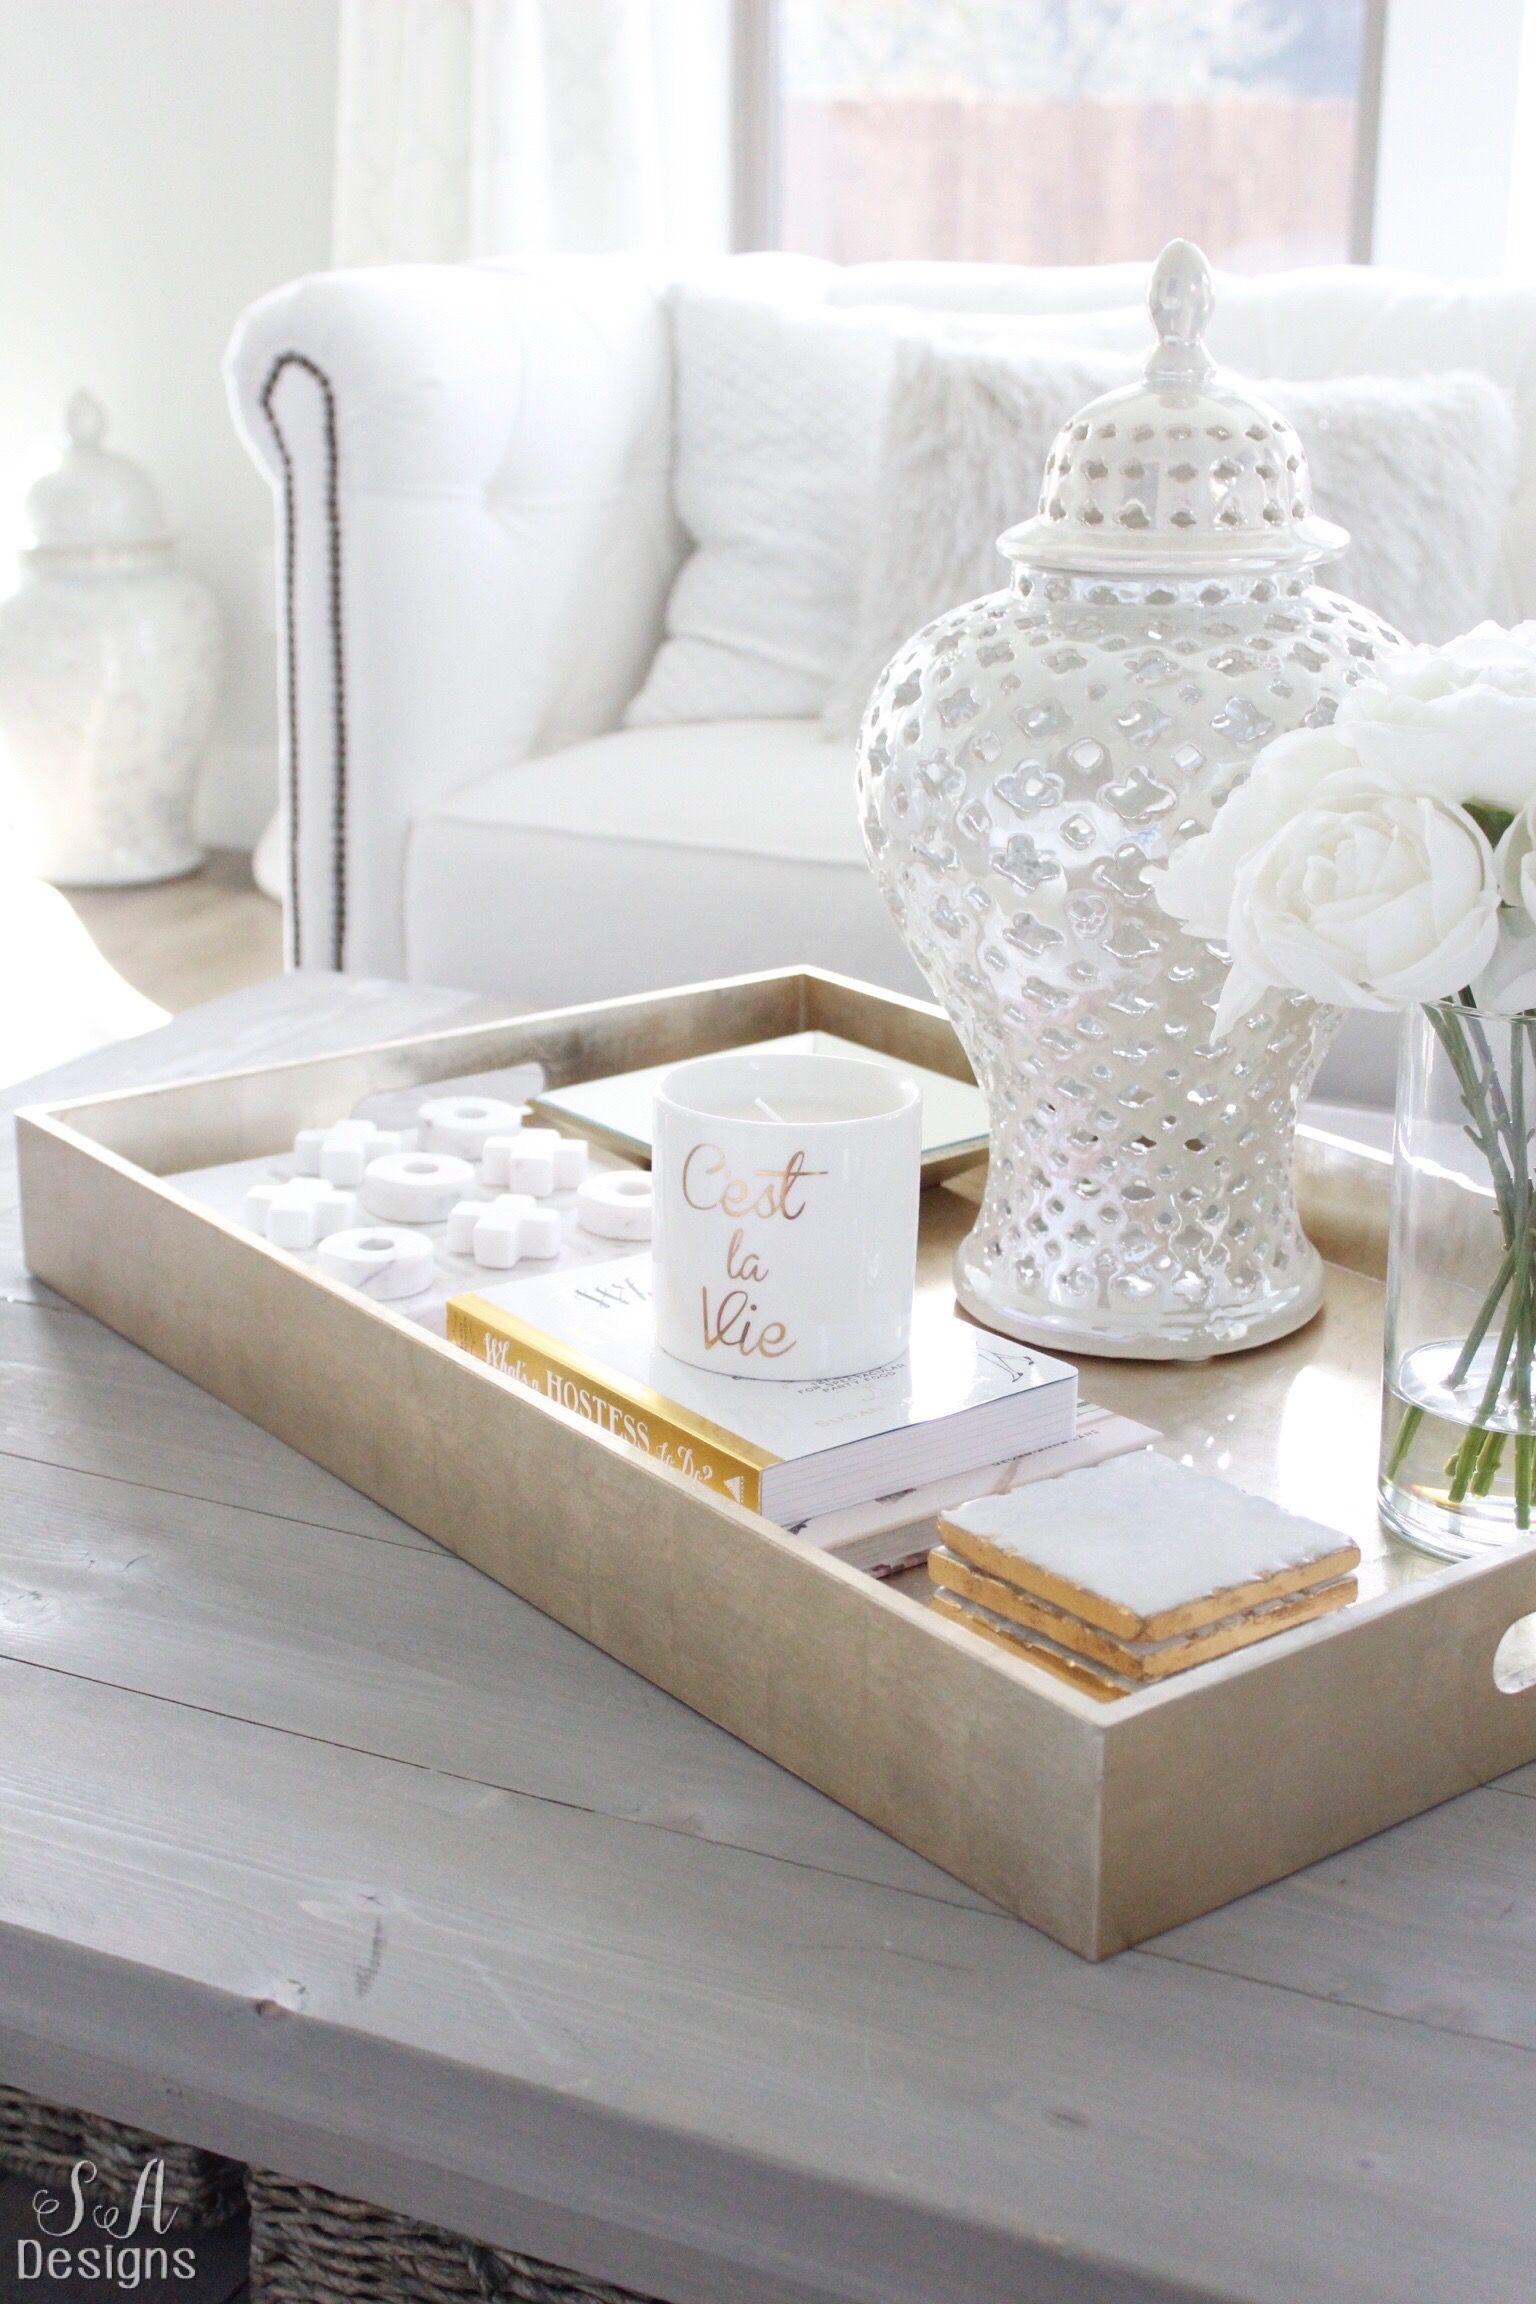 Prettiest Books To Style Your Coffee Table Style Your Home Coffee Table Styling Fashion Coffee Table Books Table Style [ 2304 x 1536 Pixel ]